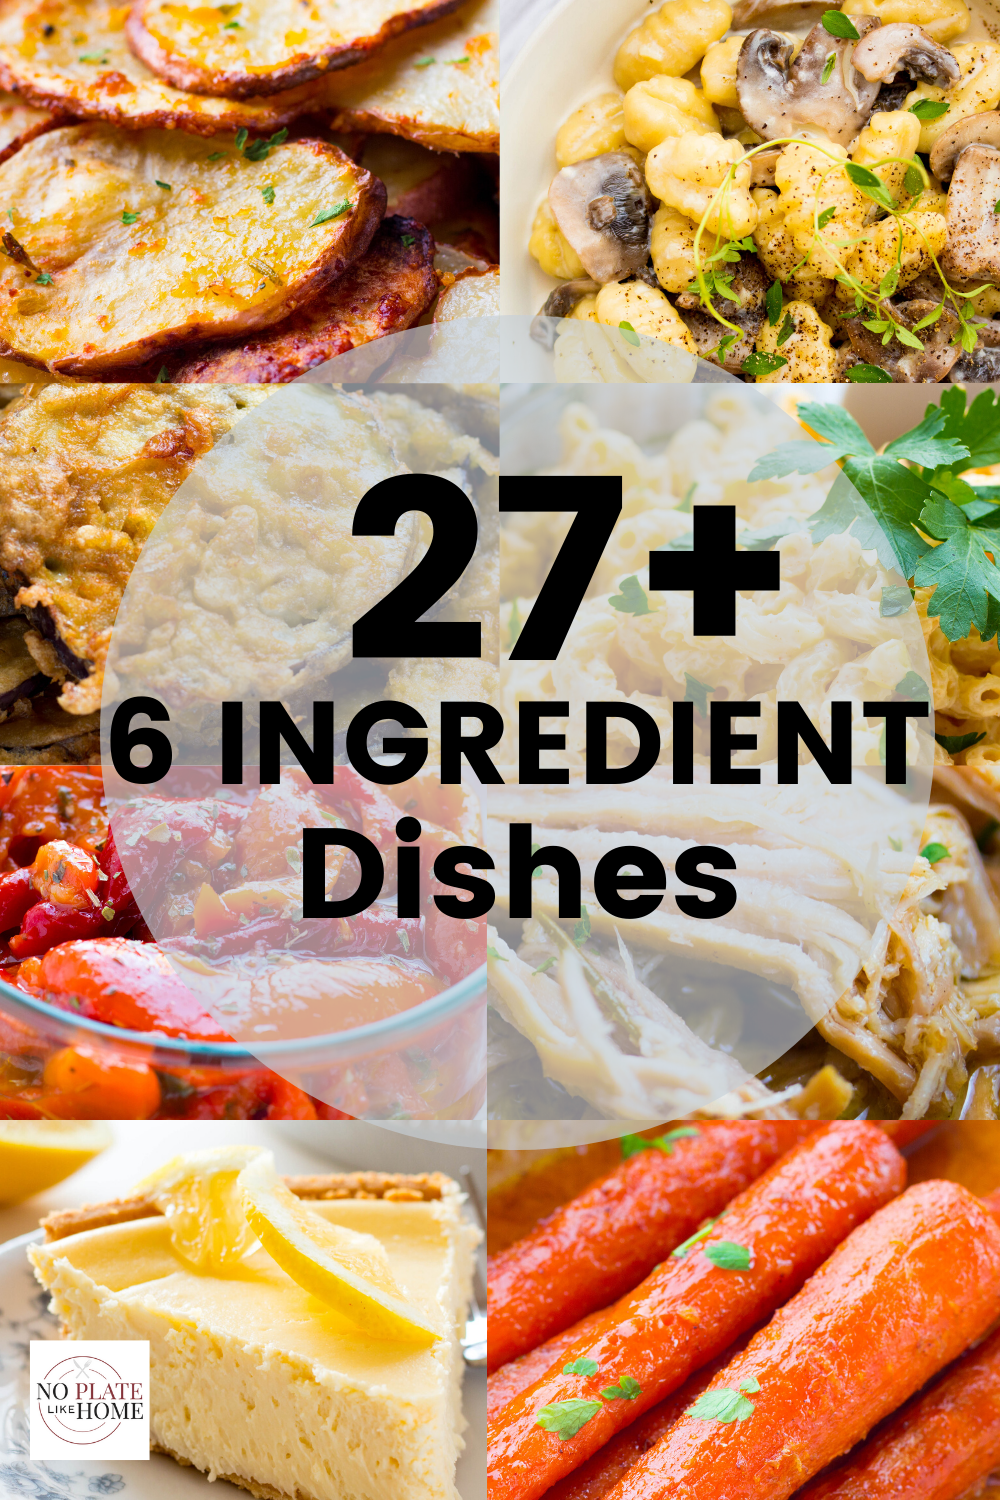 6 Ingredient Recipes Ingredients Recipes Side Dishes Easy Dishes